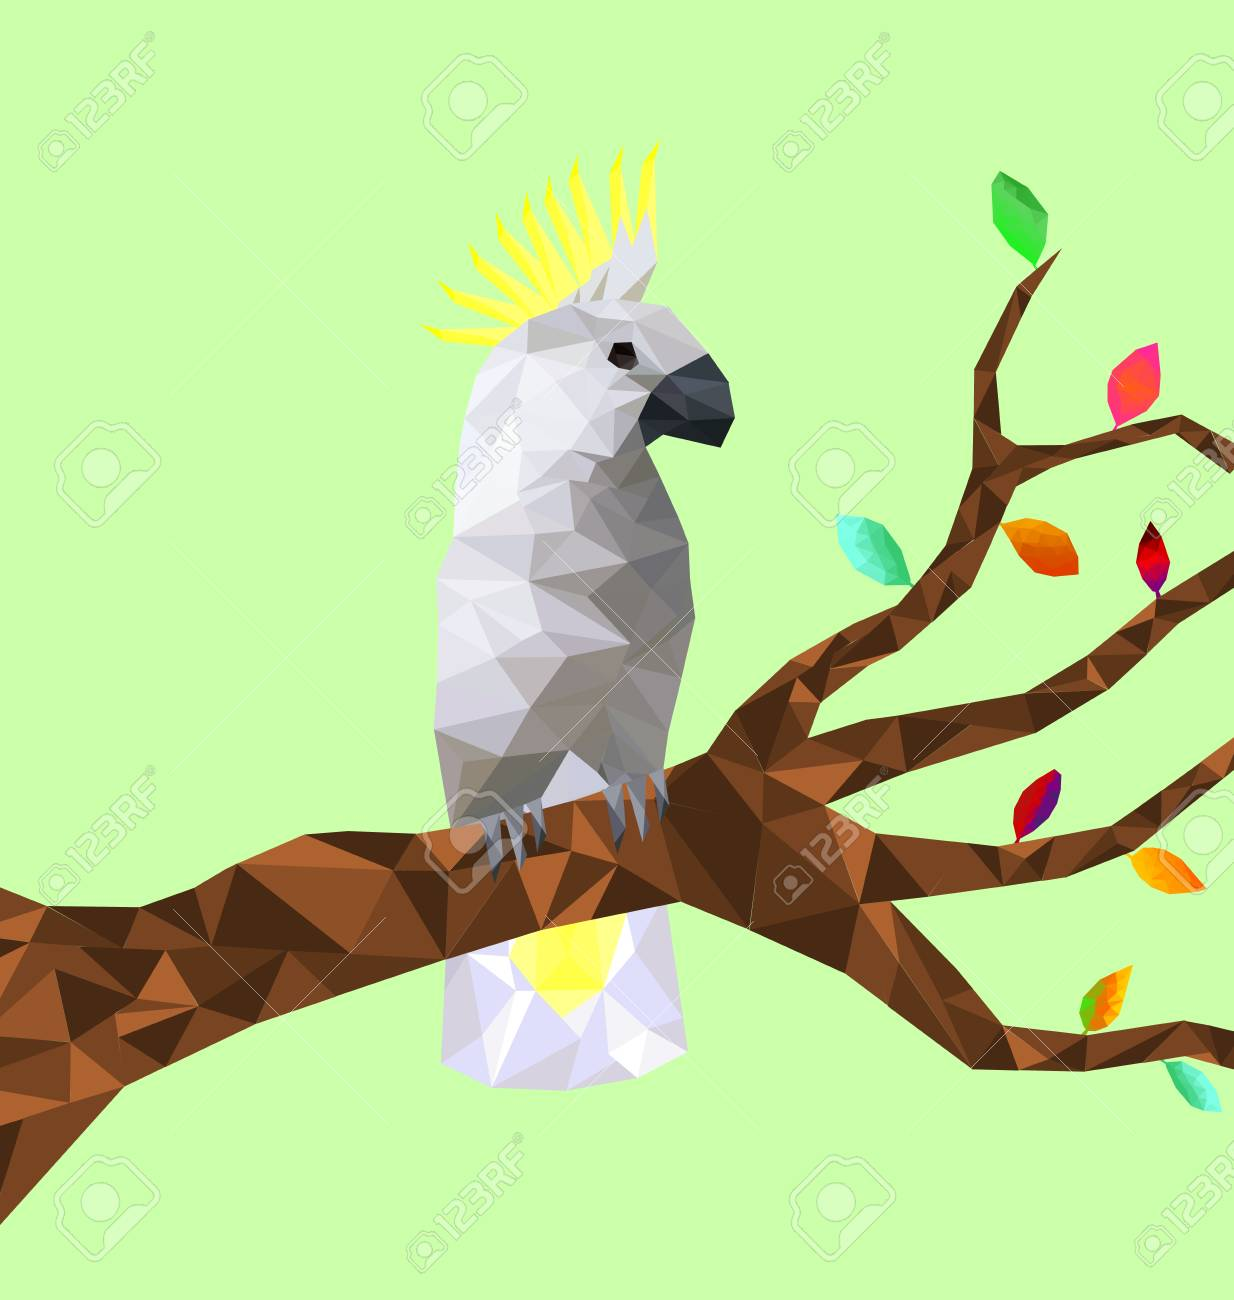 Low poly colorful Cockatoo bird with tree on back ground, birds